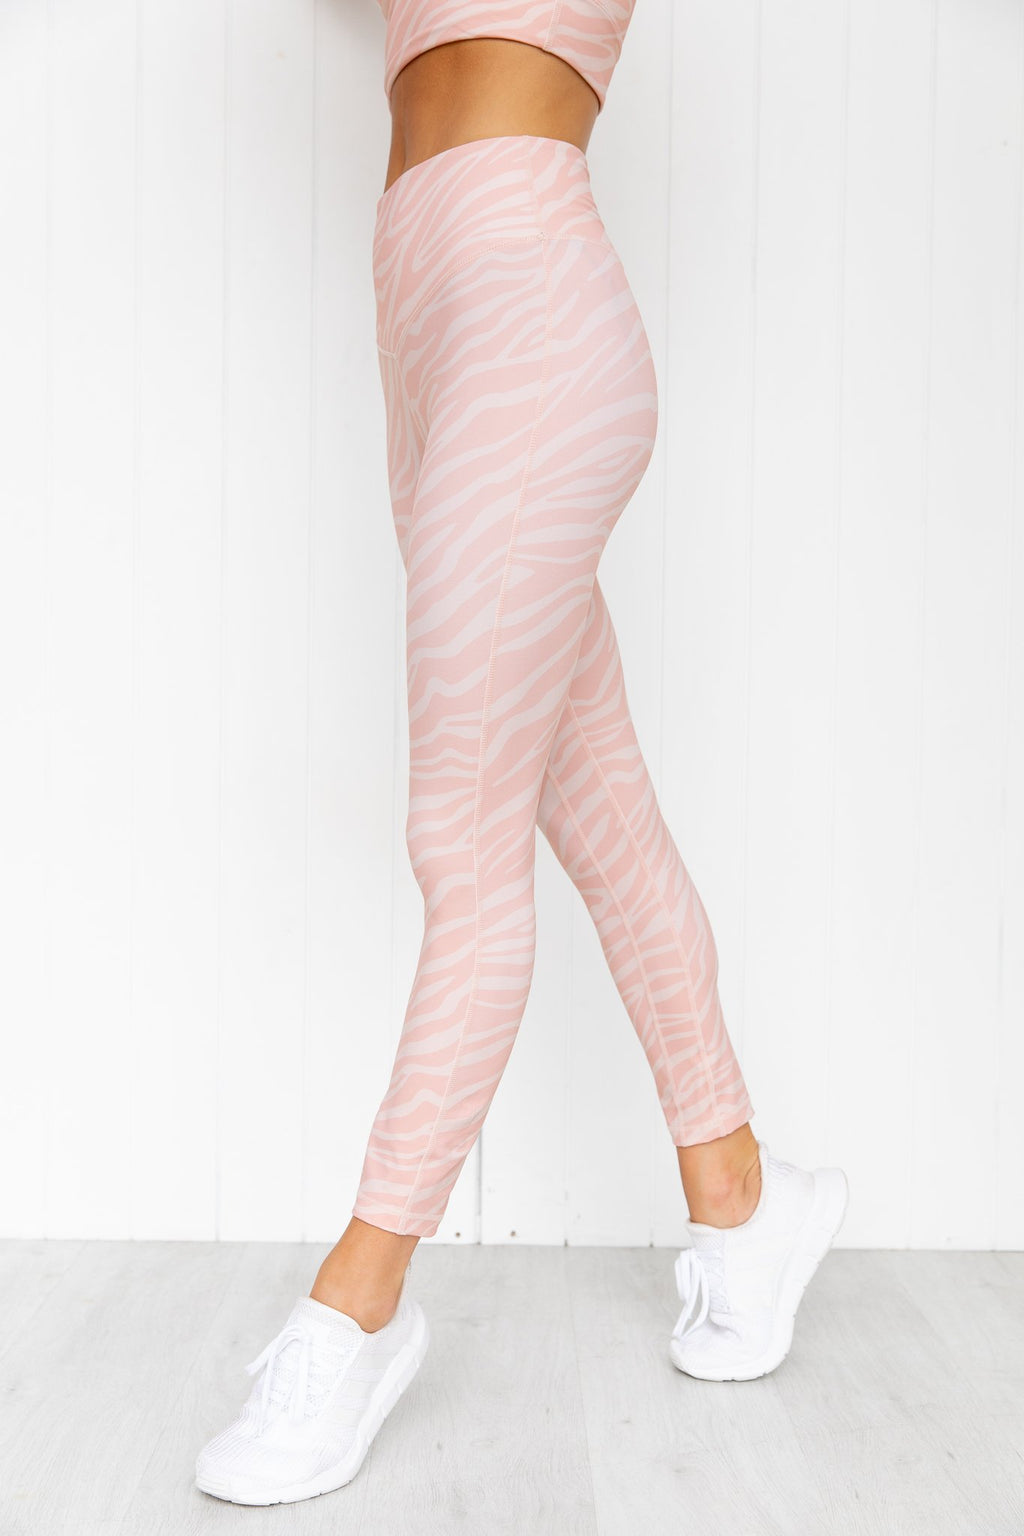 Open Oasis 7/8 Legging - PURE DASH